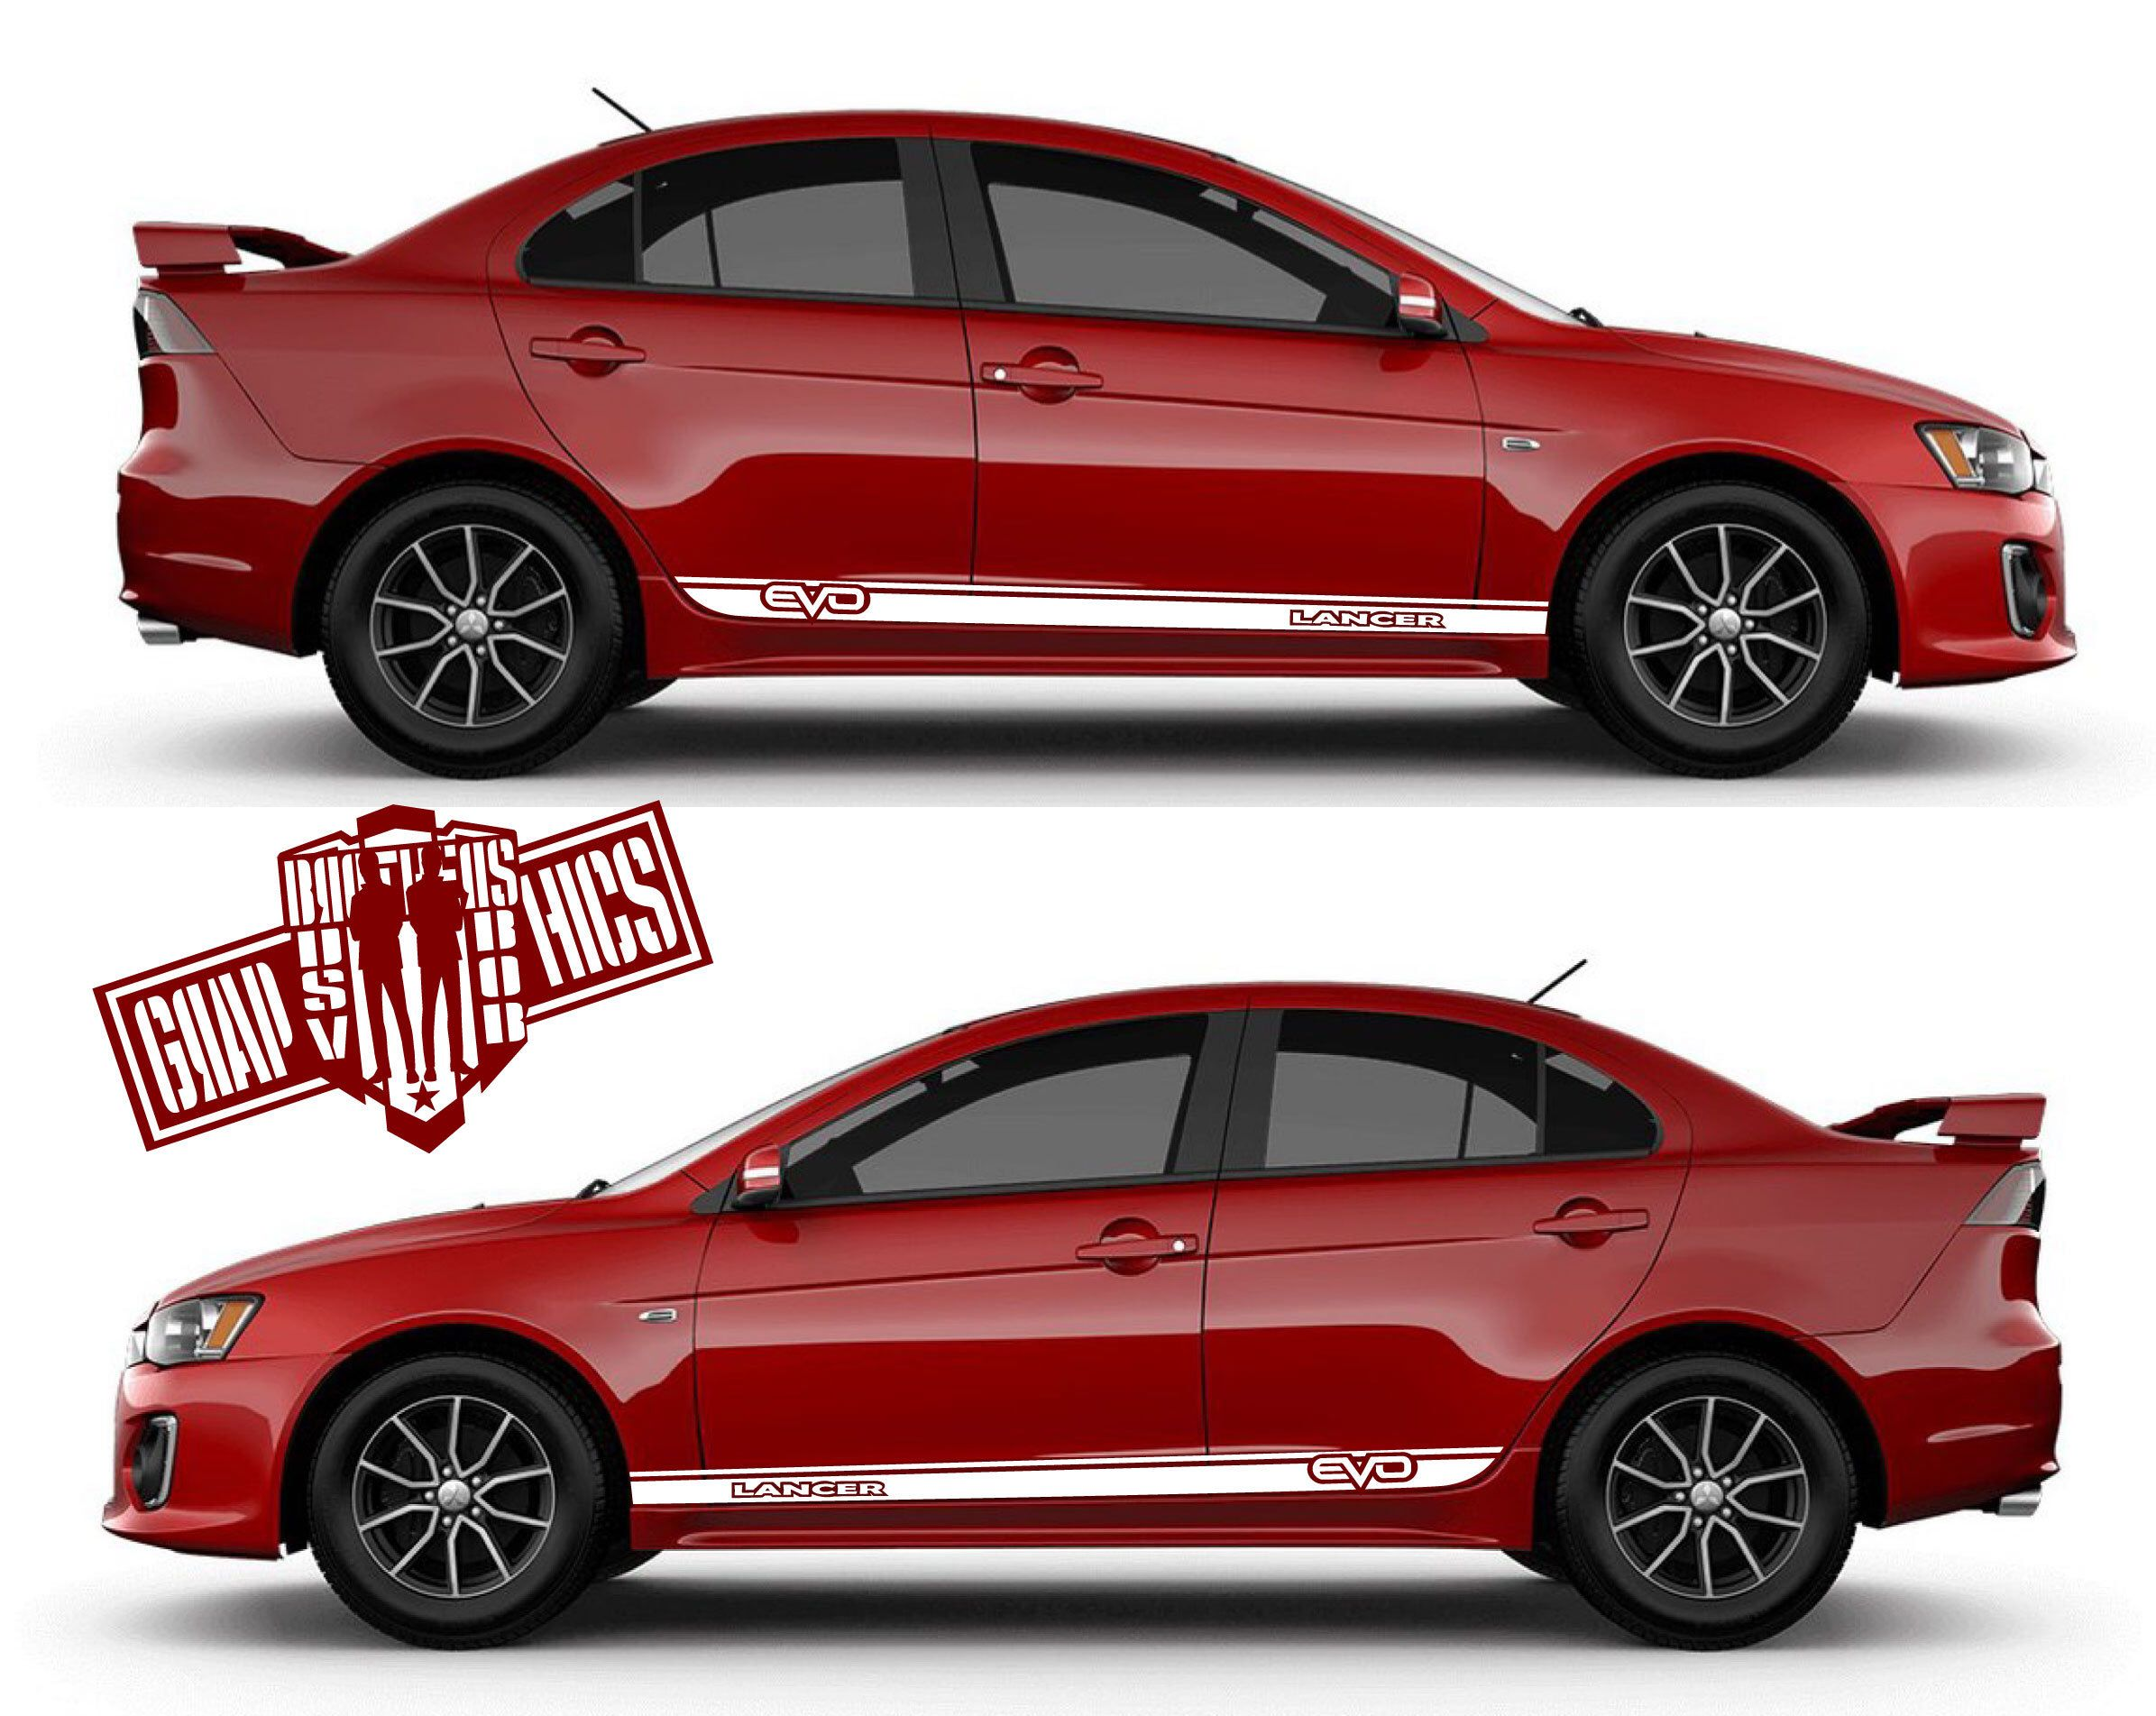 Excited To Share This Item From My Etsy Shop Side Sticker For Cars Mitsubishi Lancer Evolution Gt 2004 2019 2 Peaces Papergoods Birthday Bumperstripes A [ 1903 x 2391 Pixel ]